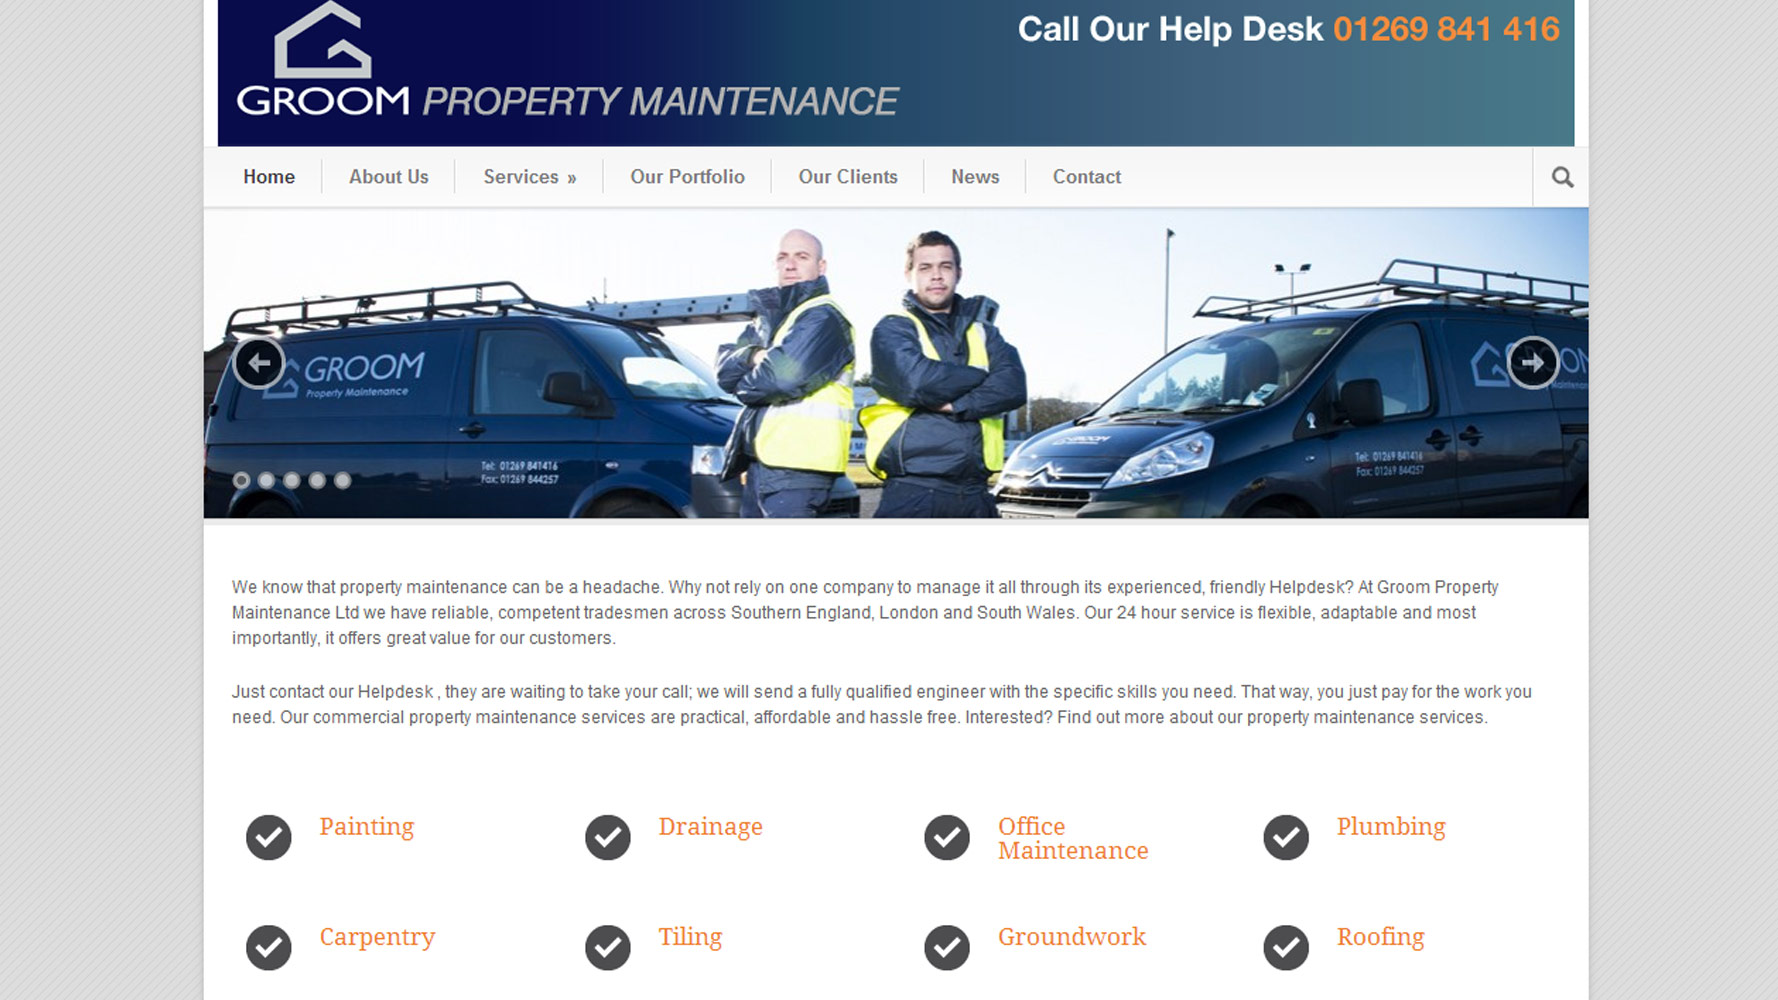 Groom Property Maintenance Website Web Design by Web Adept